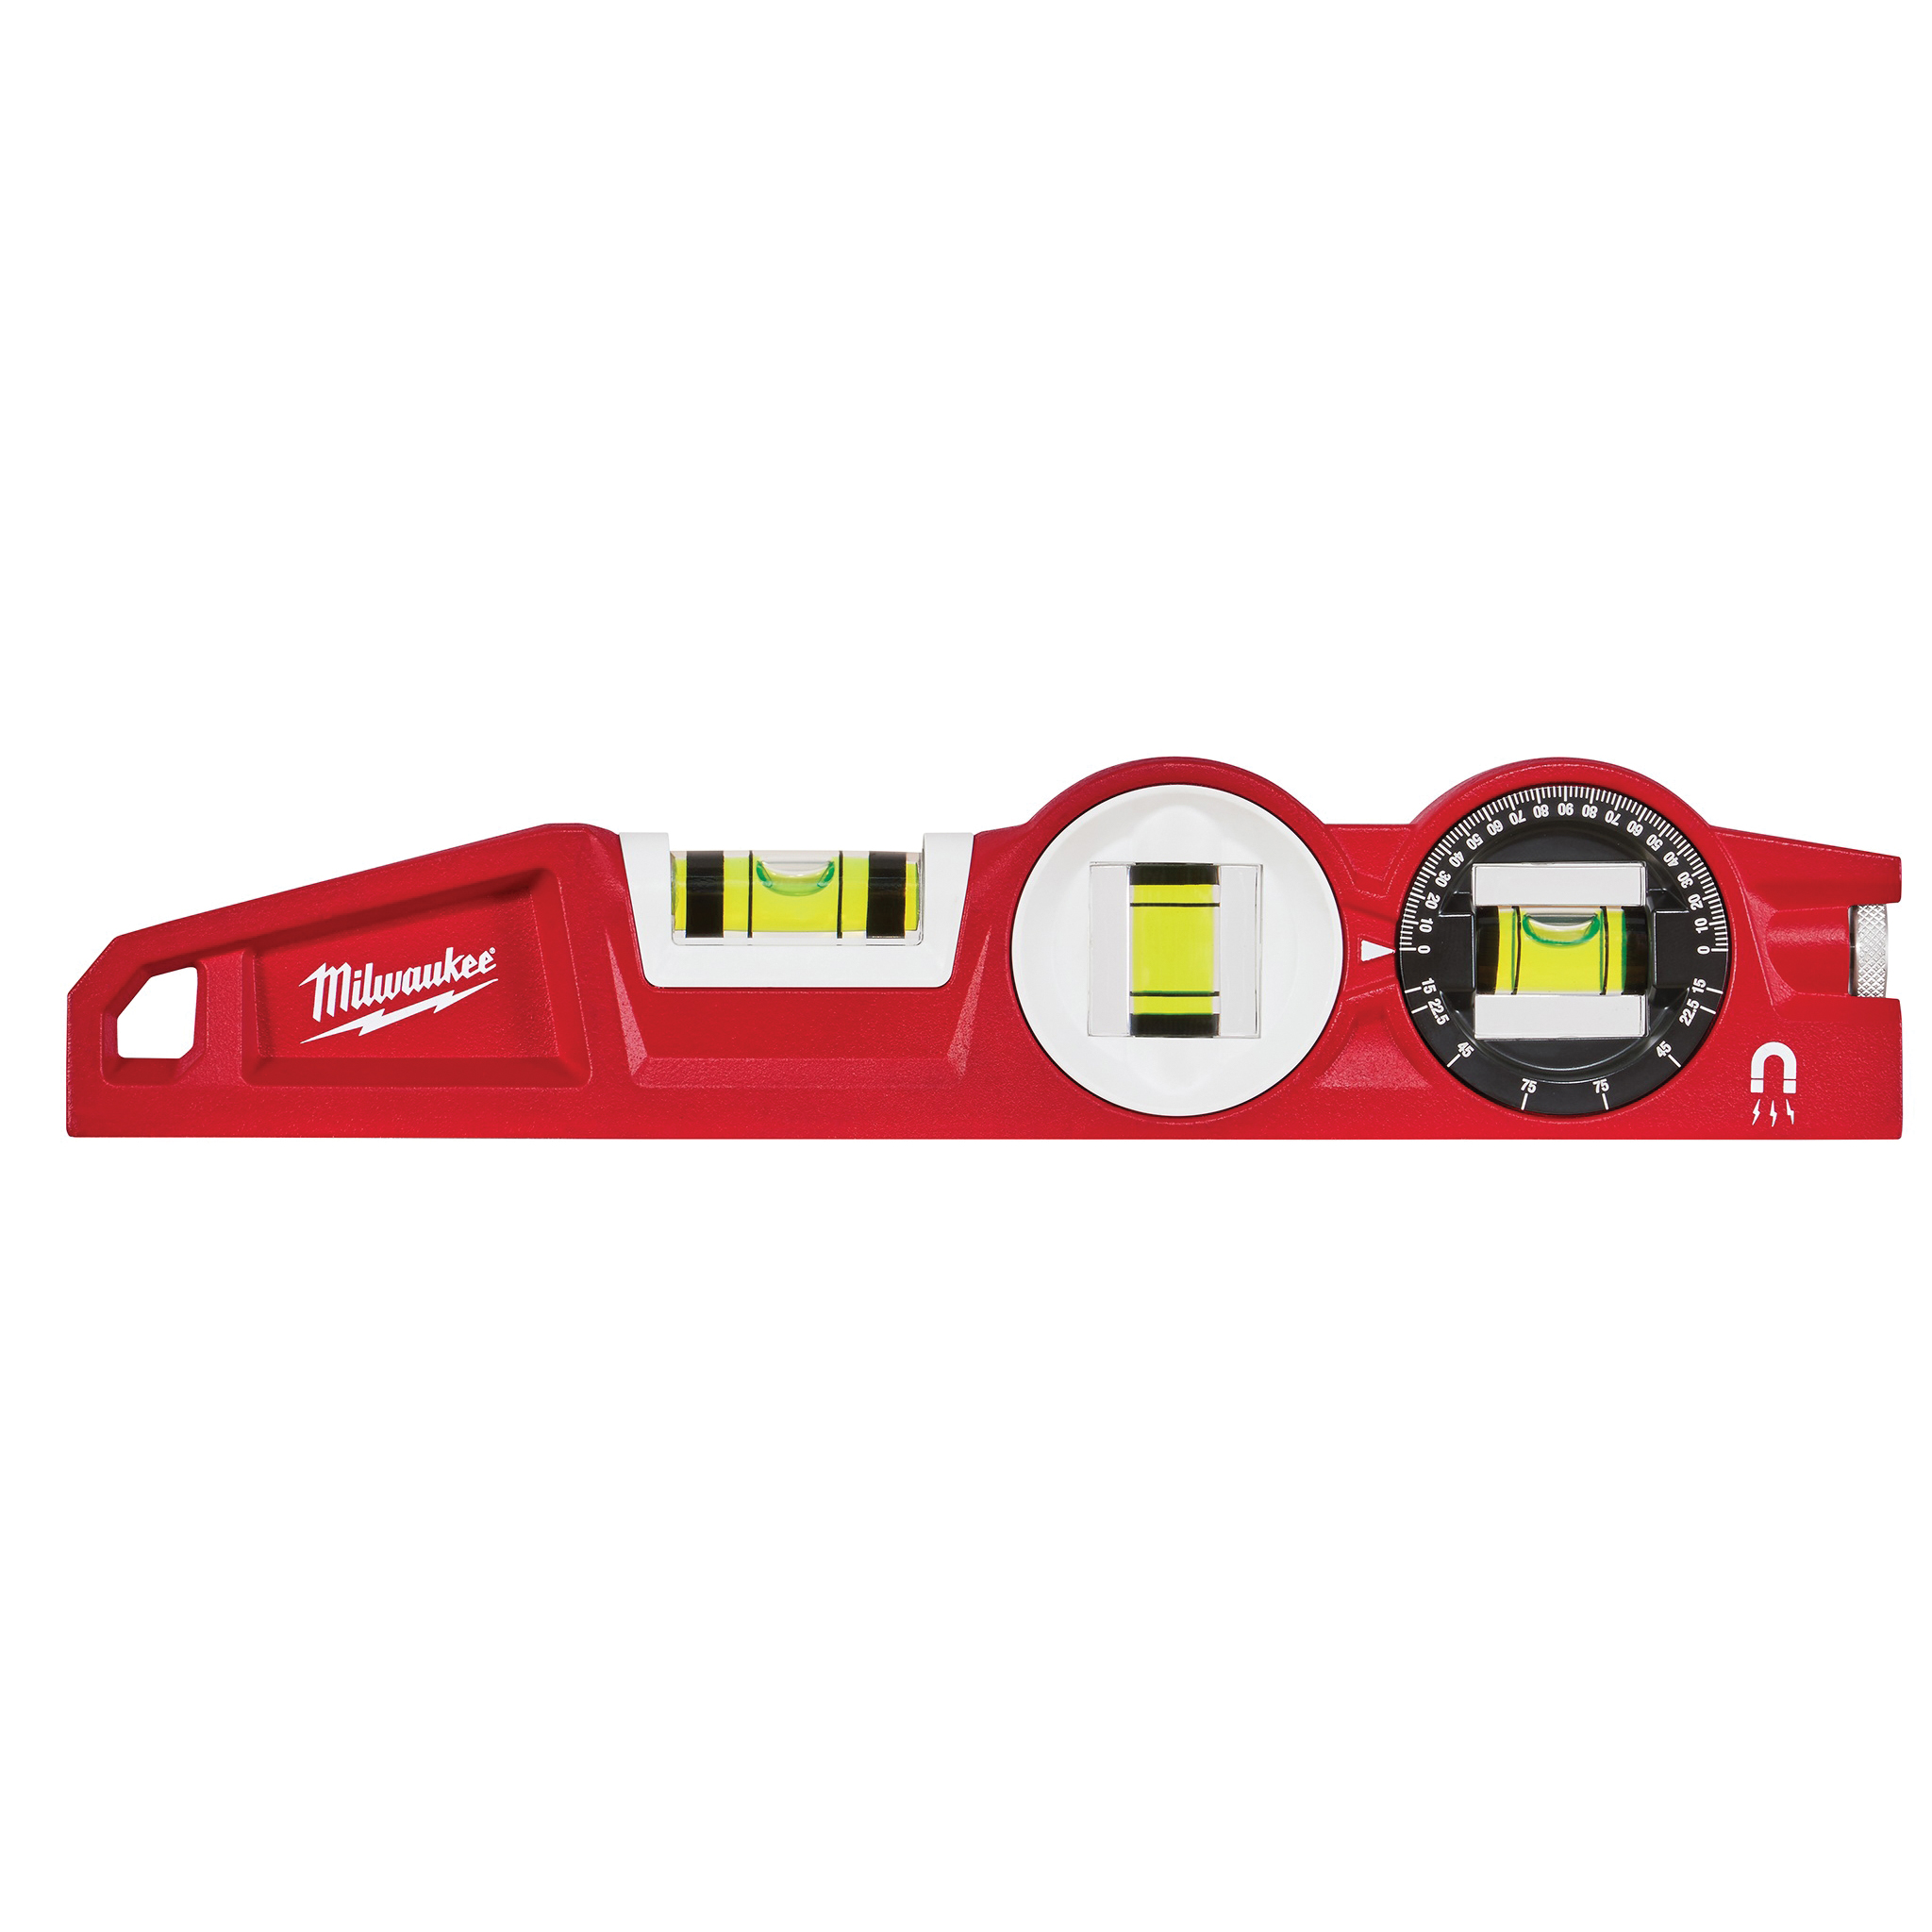 Picture of Milwaukee 48-22-5210 Torpedo Level, 10 in L, 3 -Vial, Magnetic, Aluminum, Red